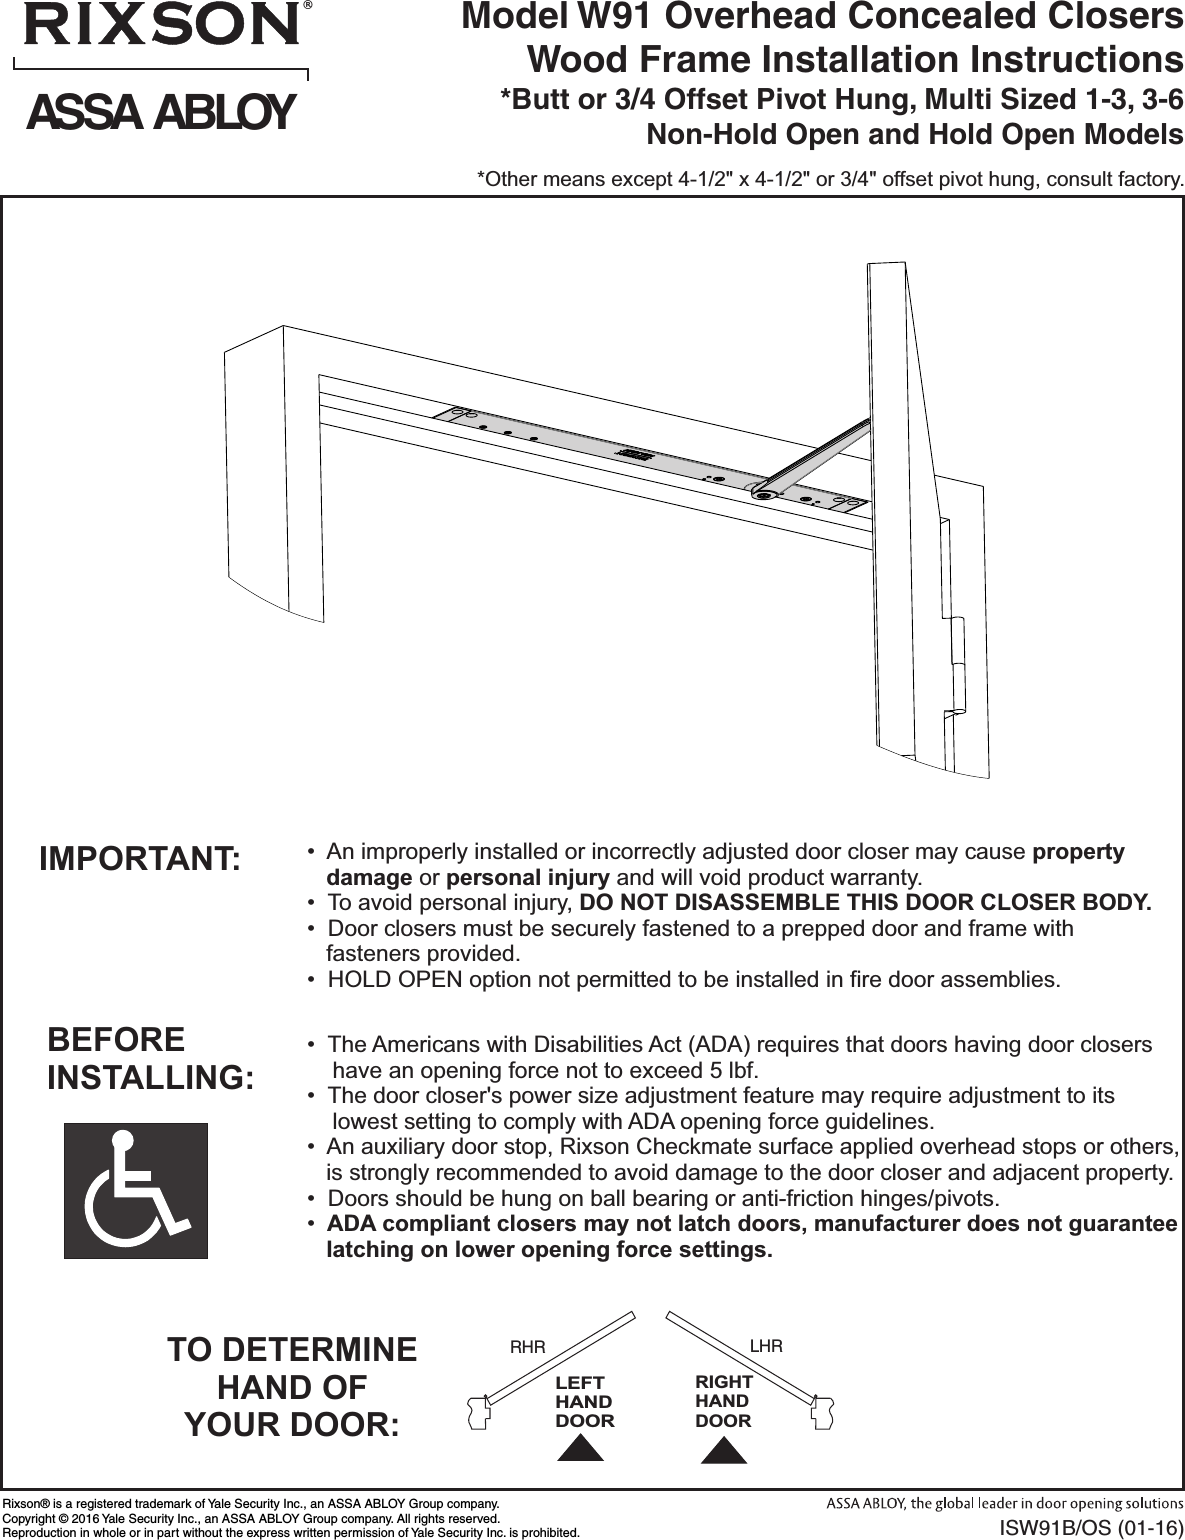 Rixson Isw91b Os 01 16 W91 Overhead Concealed Closers Wood Frame